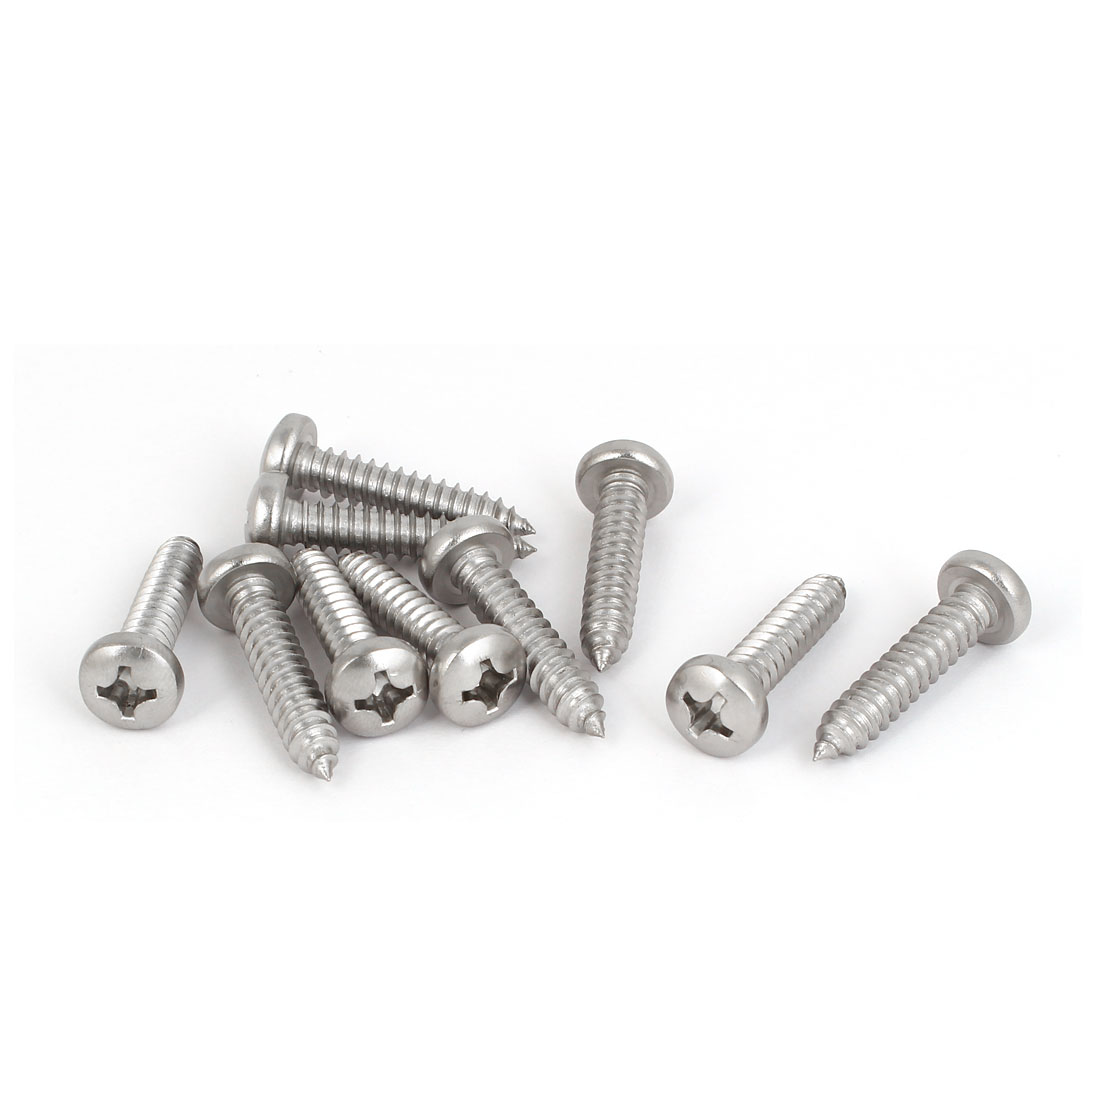 M6.3x30mm 316 Stainless Steel Phillips Drive Pan Head Self Tapping Screws 10pcs